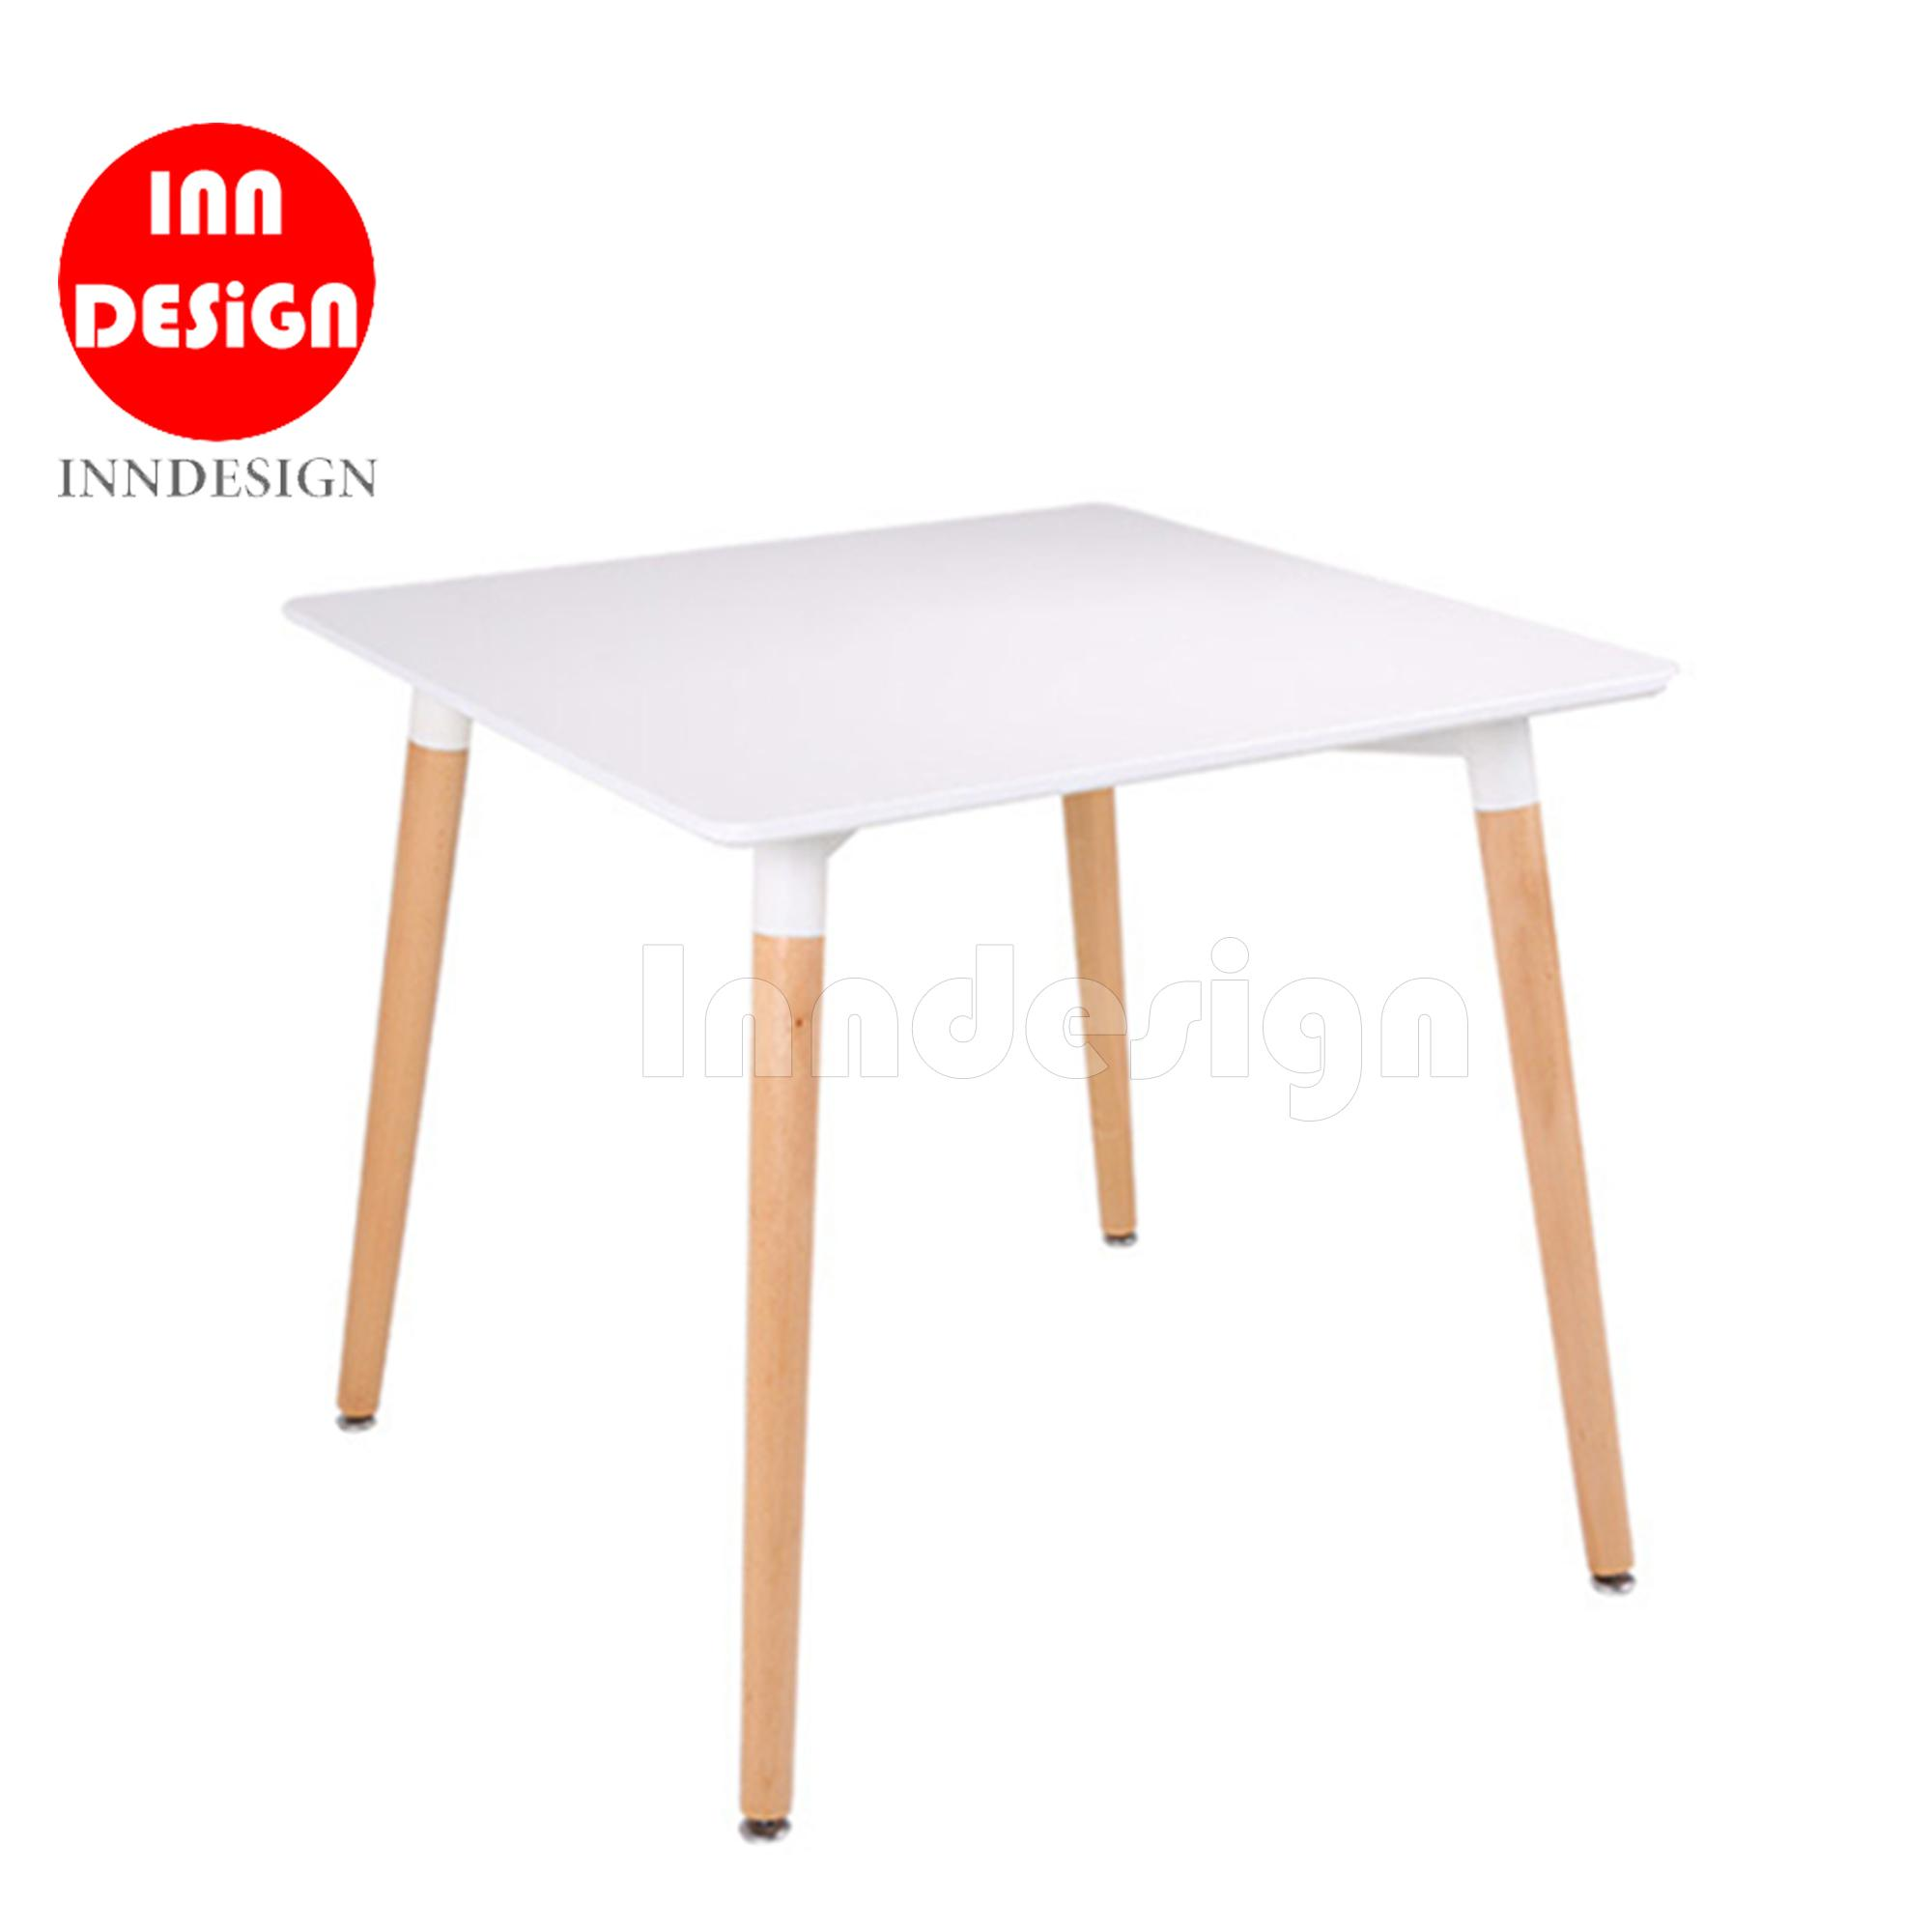 Eames Square Dining Table